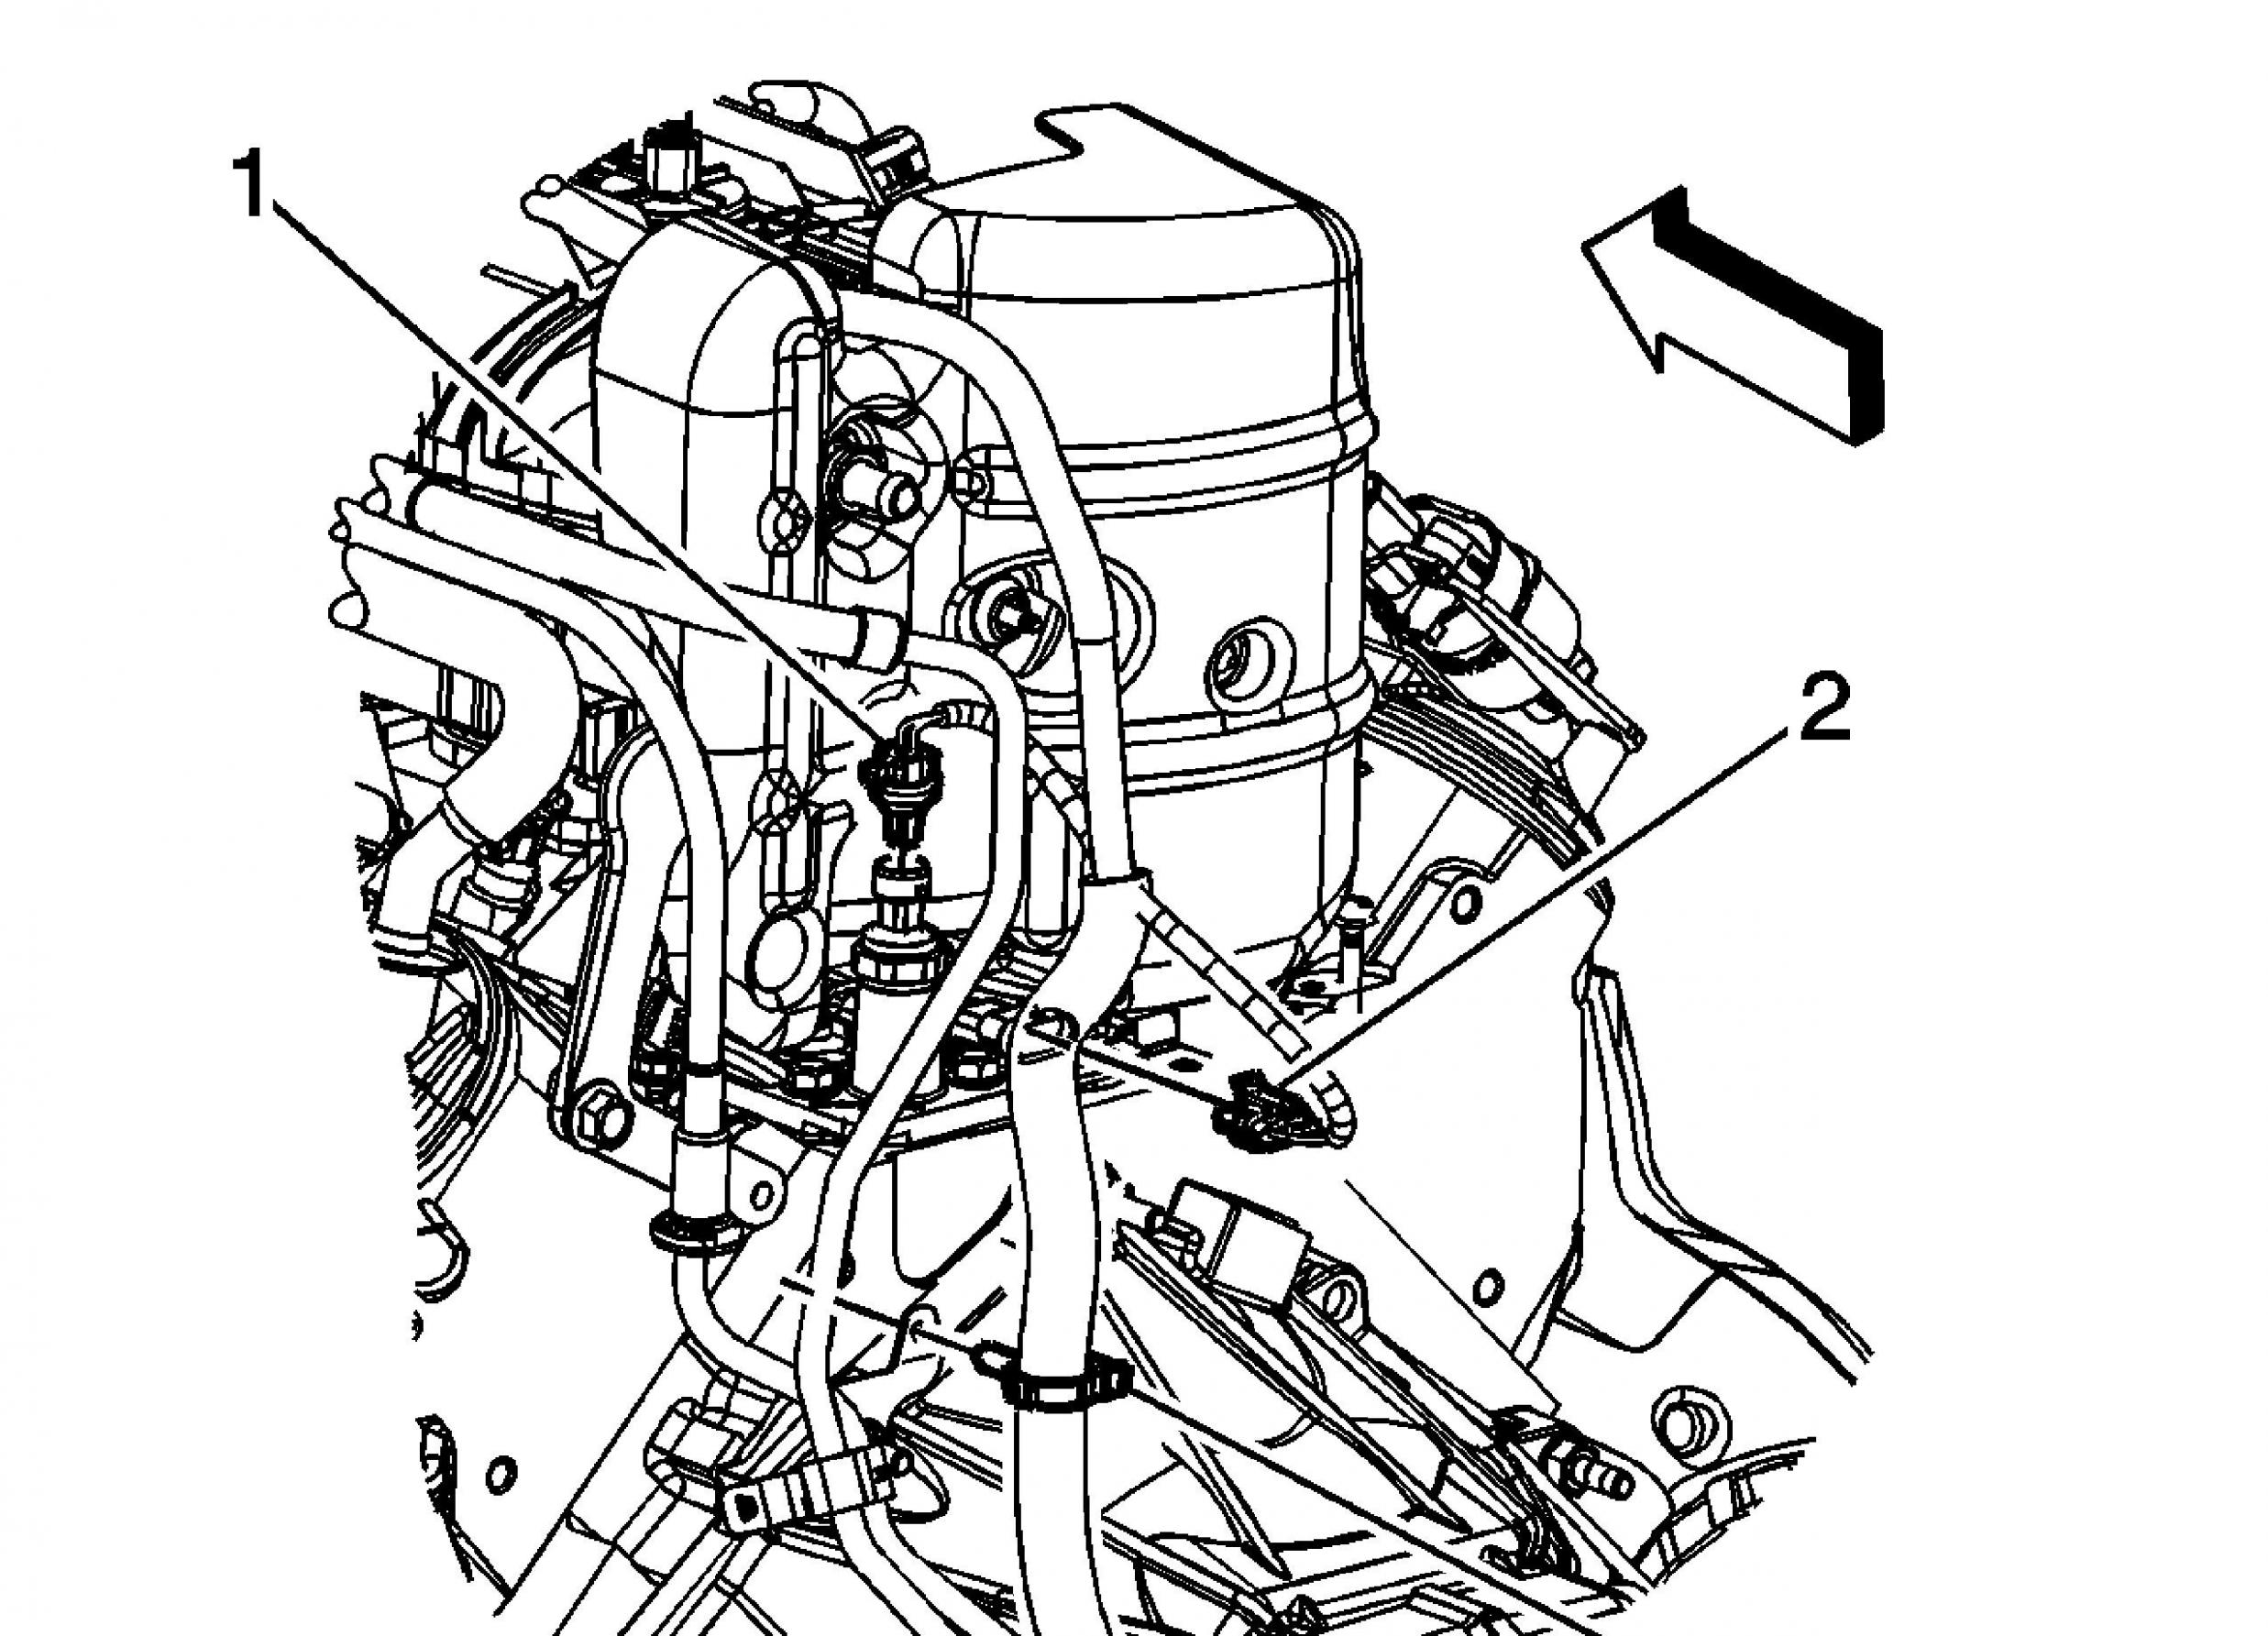 93 Chevrolet Engine Wiring Diagram